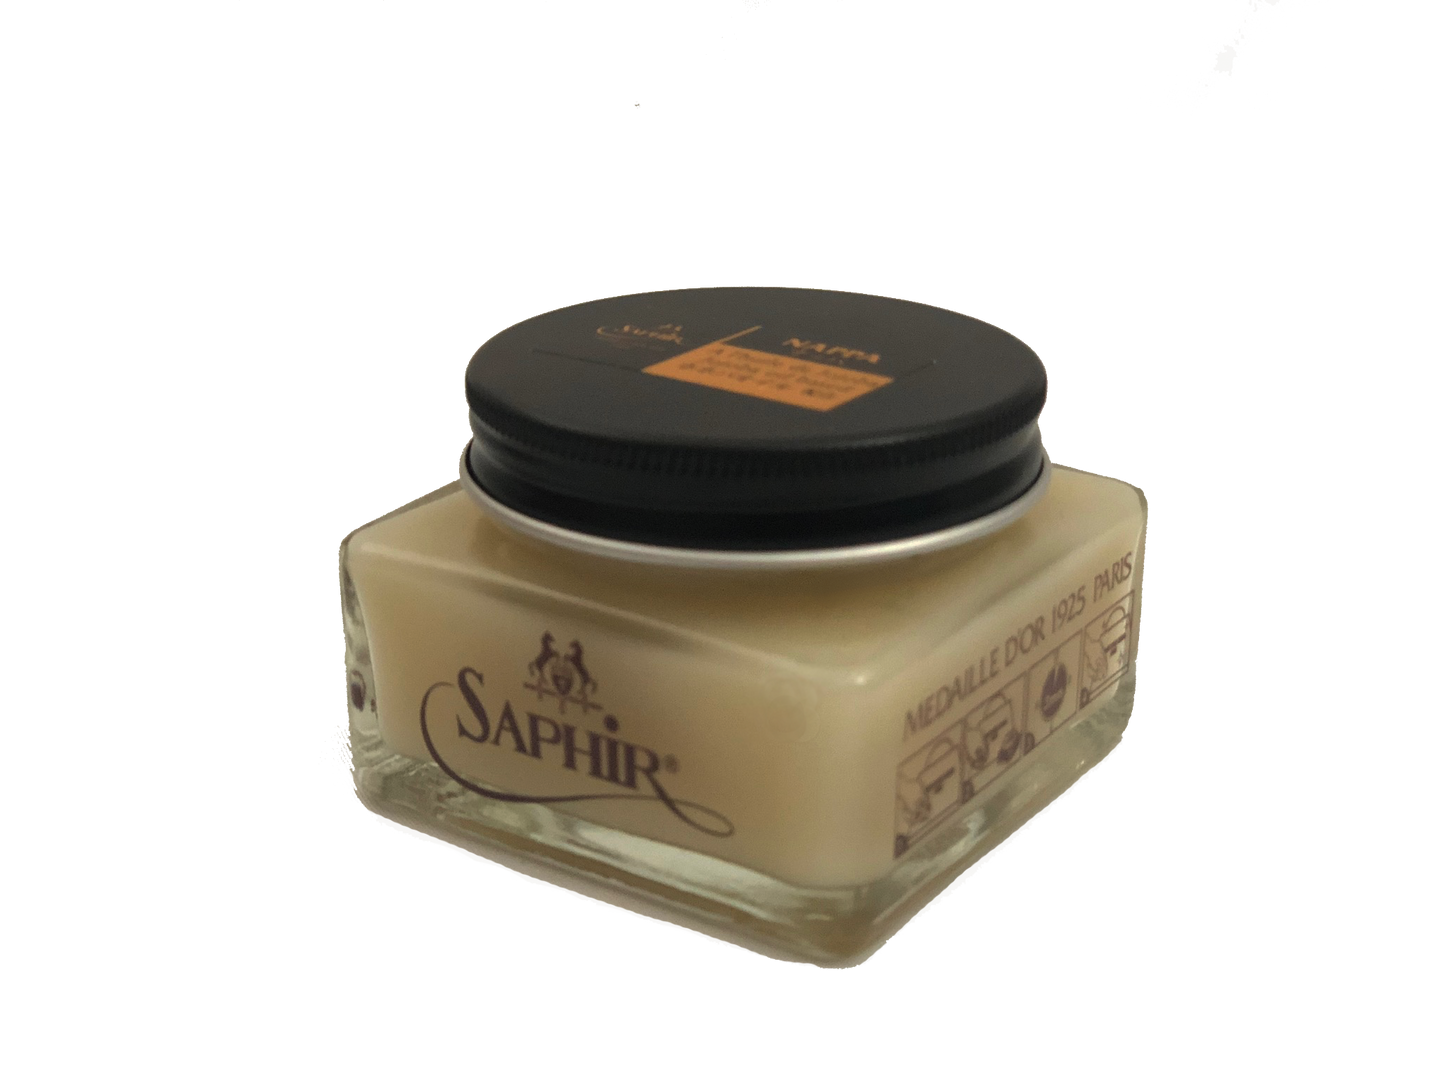 Saphir Medaille d'Or Nappa Cream - Vikk & Co.